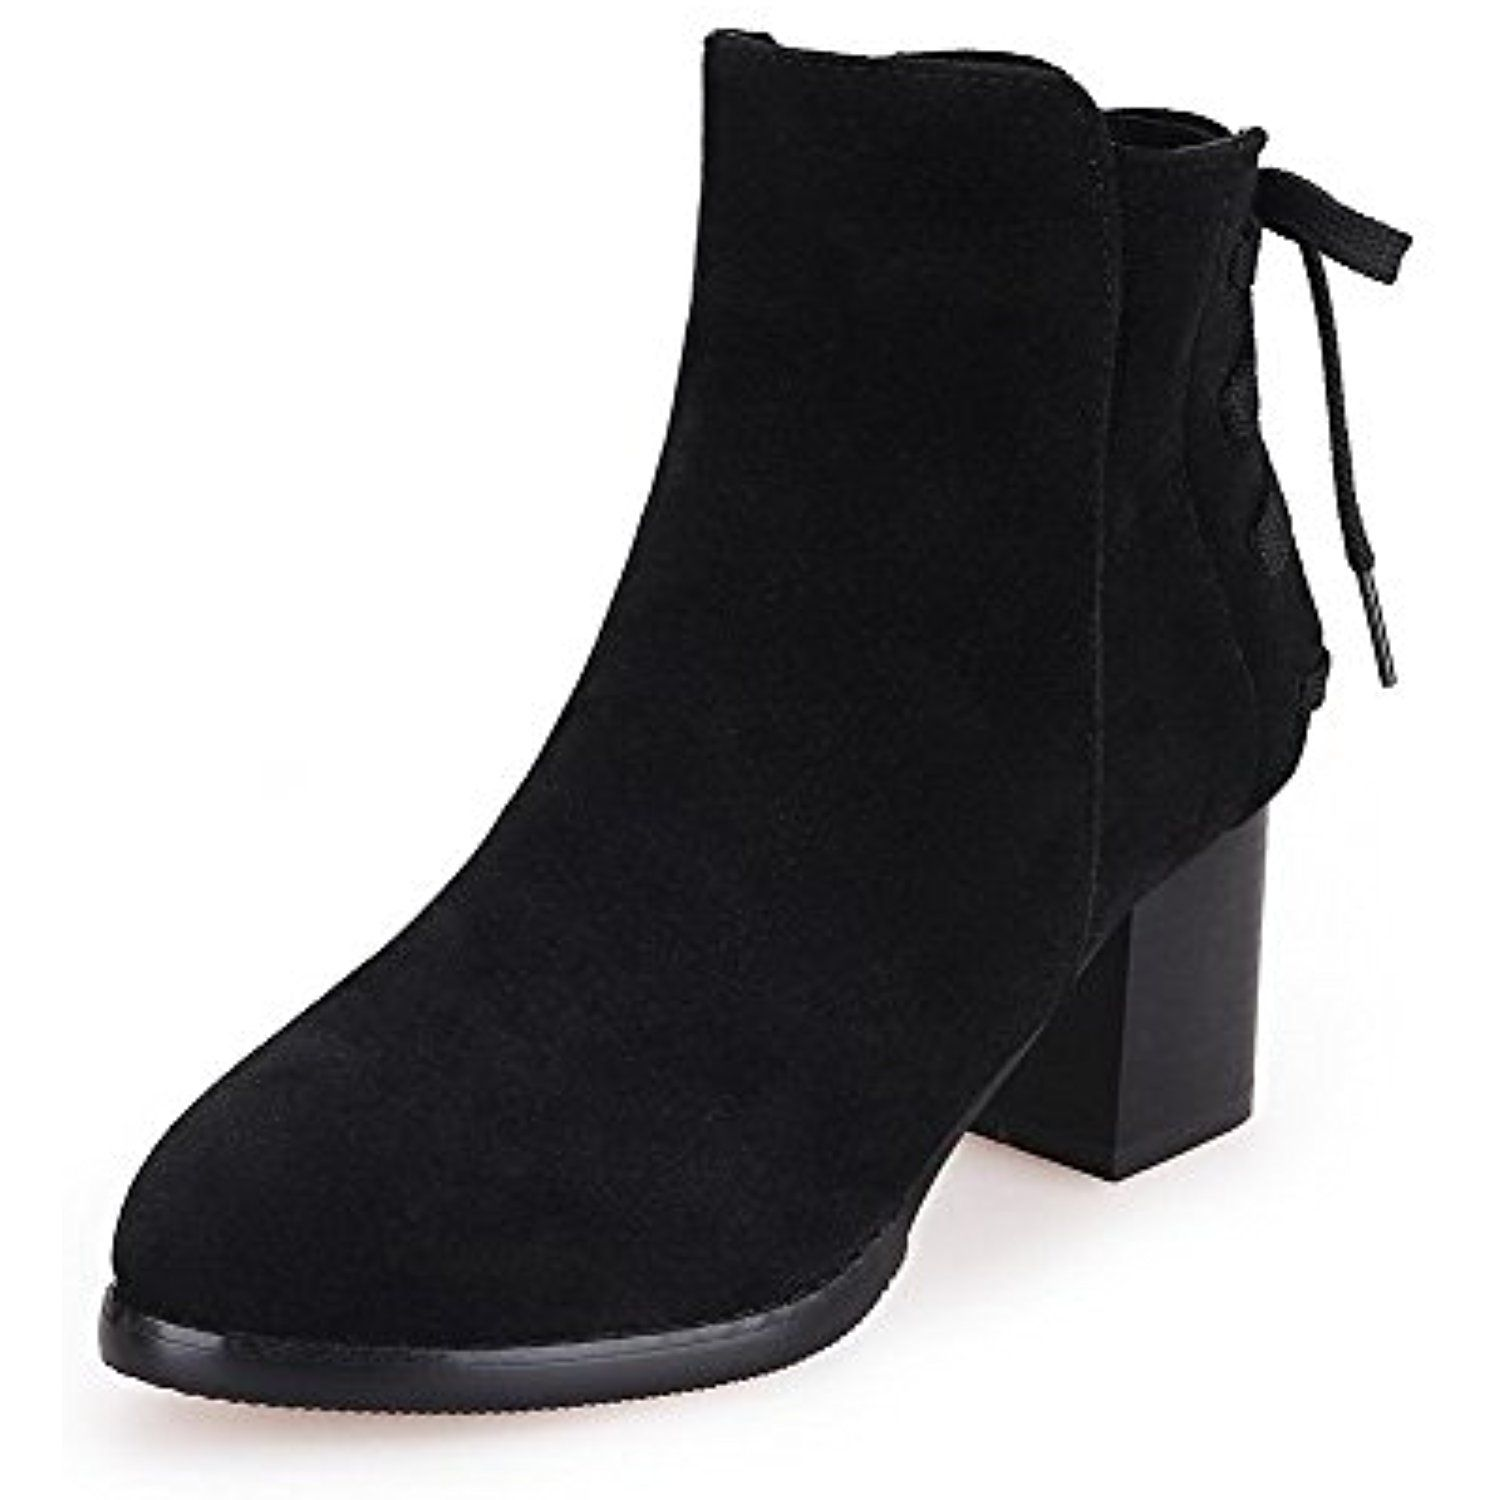 Women's Solid Frosted Kitten Heels Pull On Pointed Closed Toe Boots